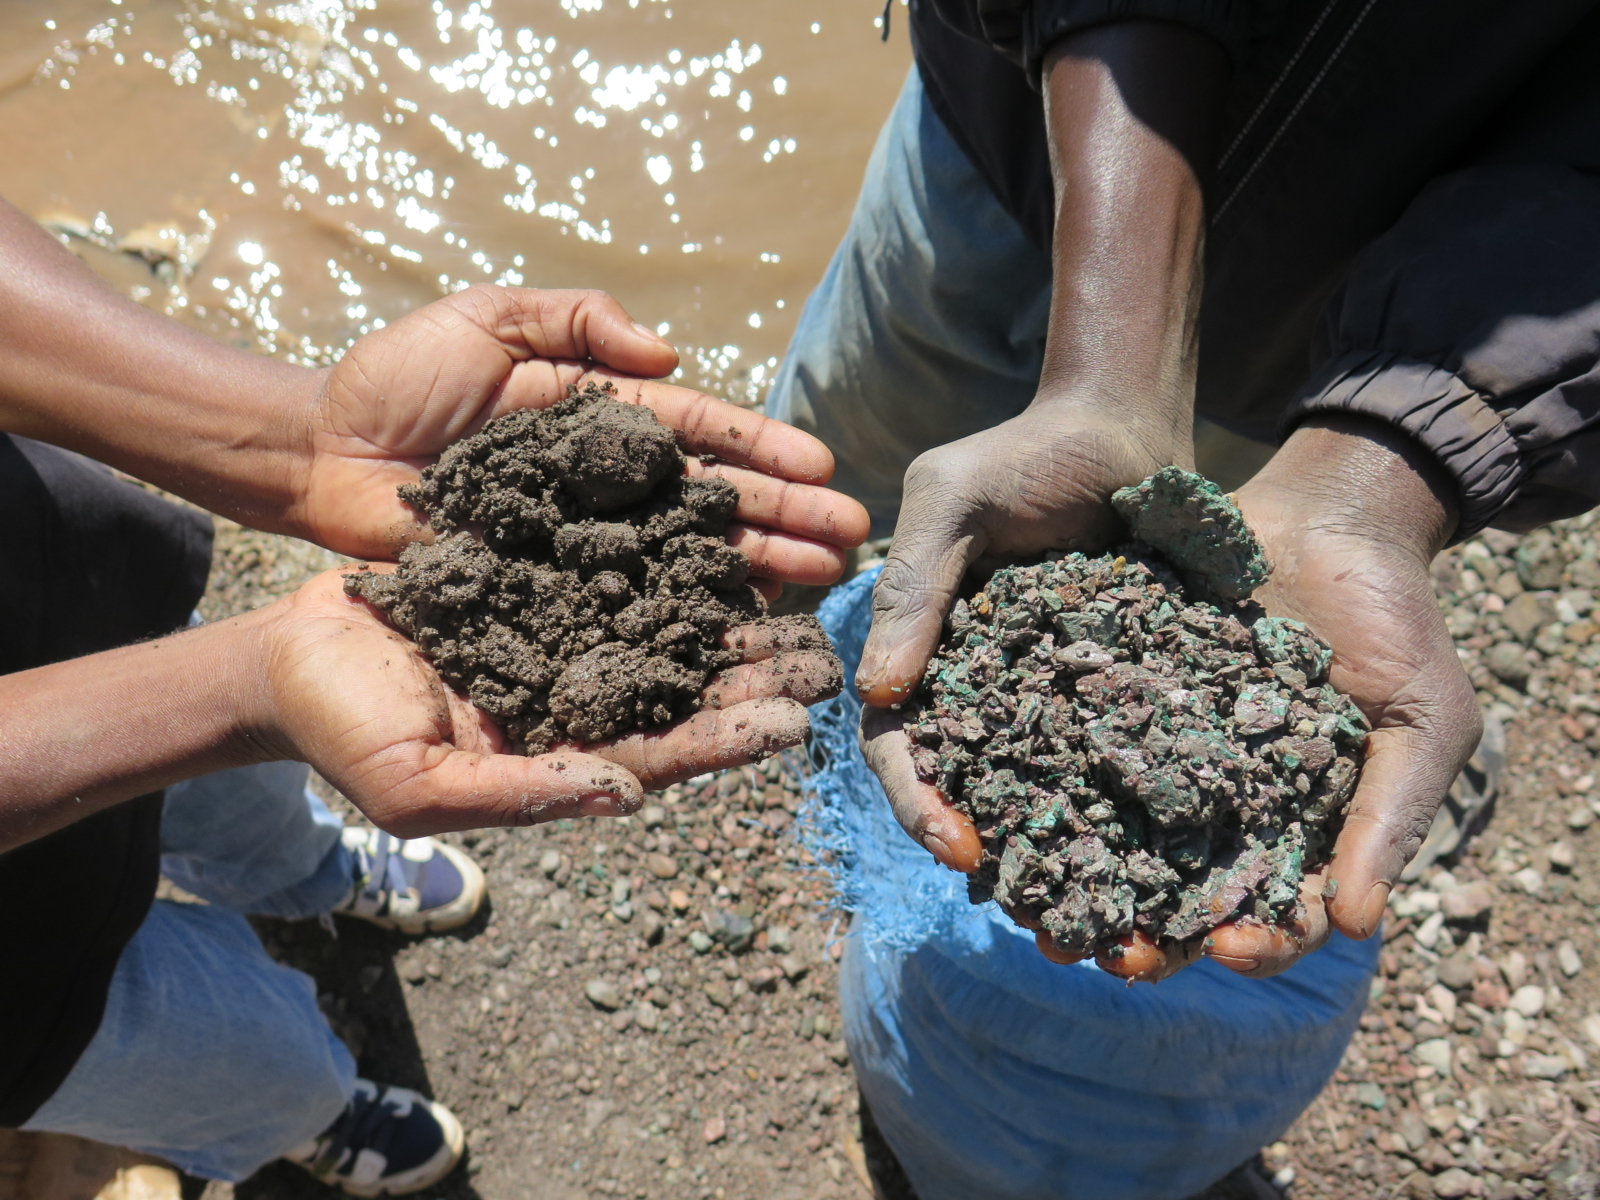 USA: Suspending conflict minerals law would throw a cloak of secrecy over rogue business practices